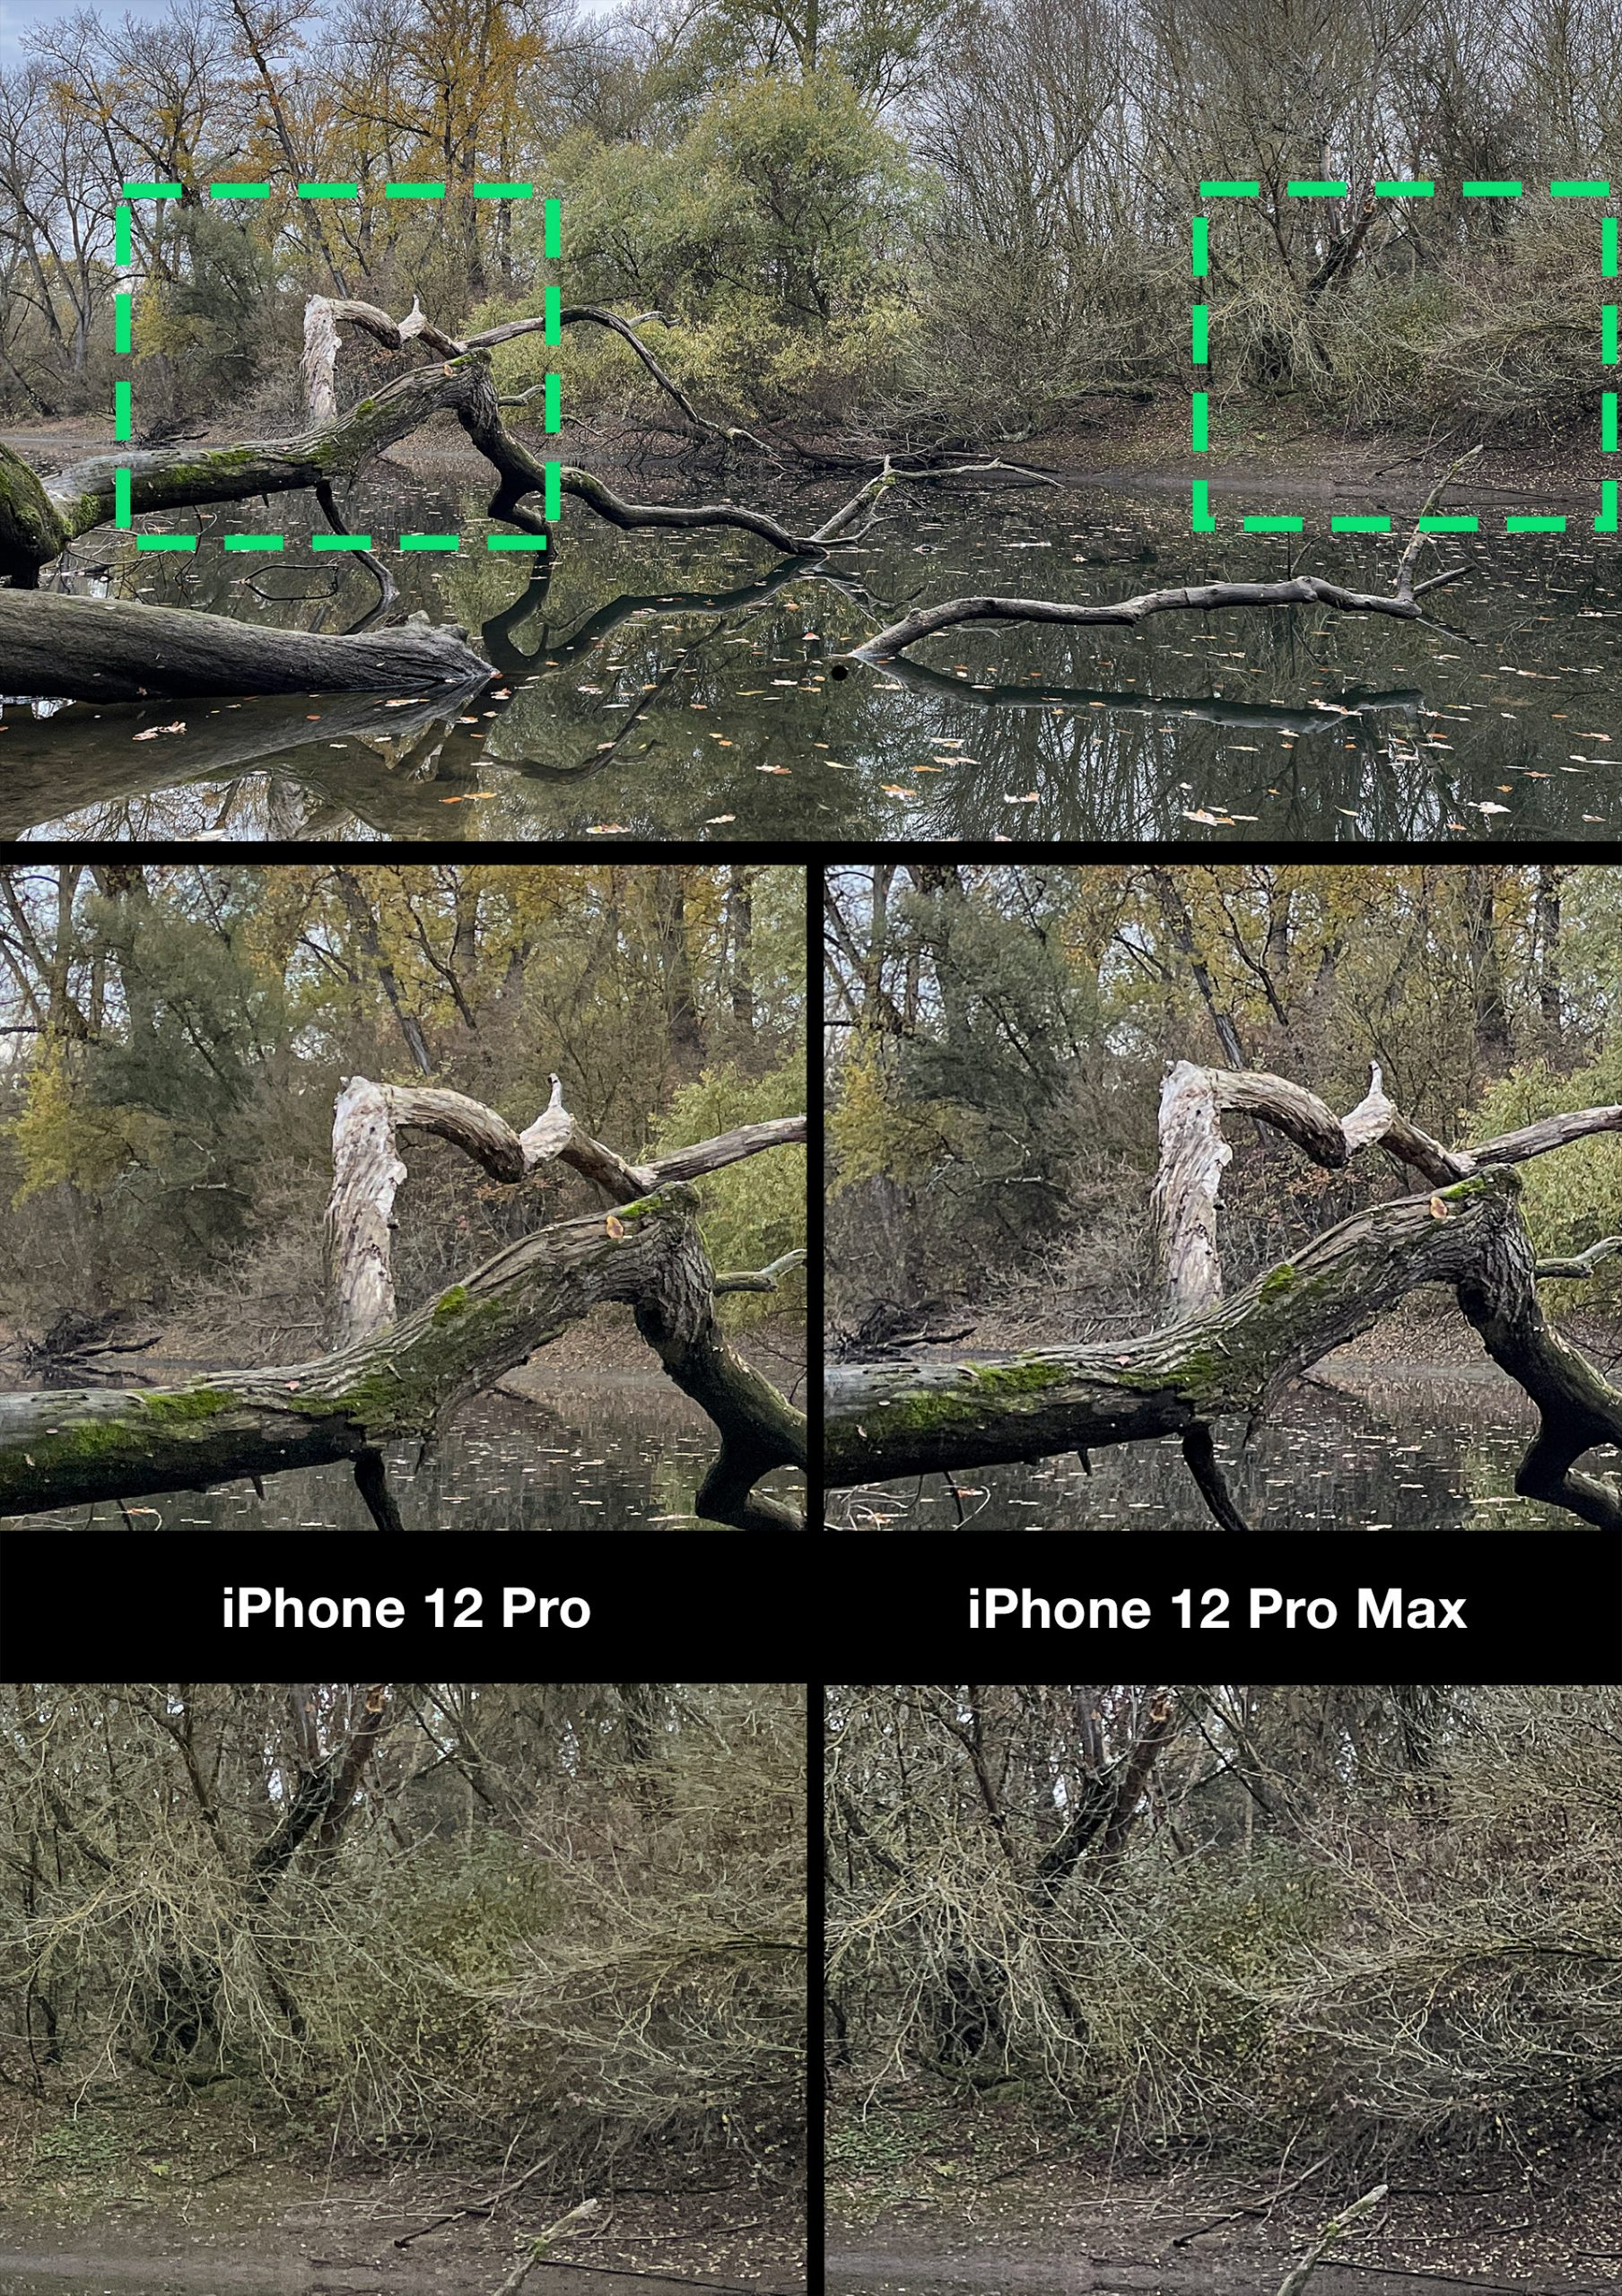 iPhone 12 Pro & iPhone 12 Pro Max: ProCamera + HDR